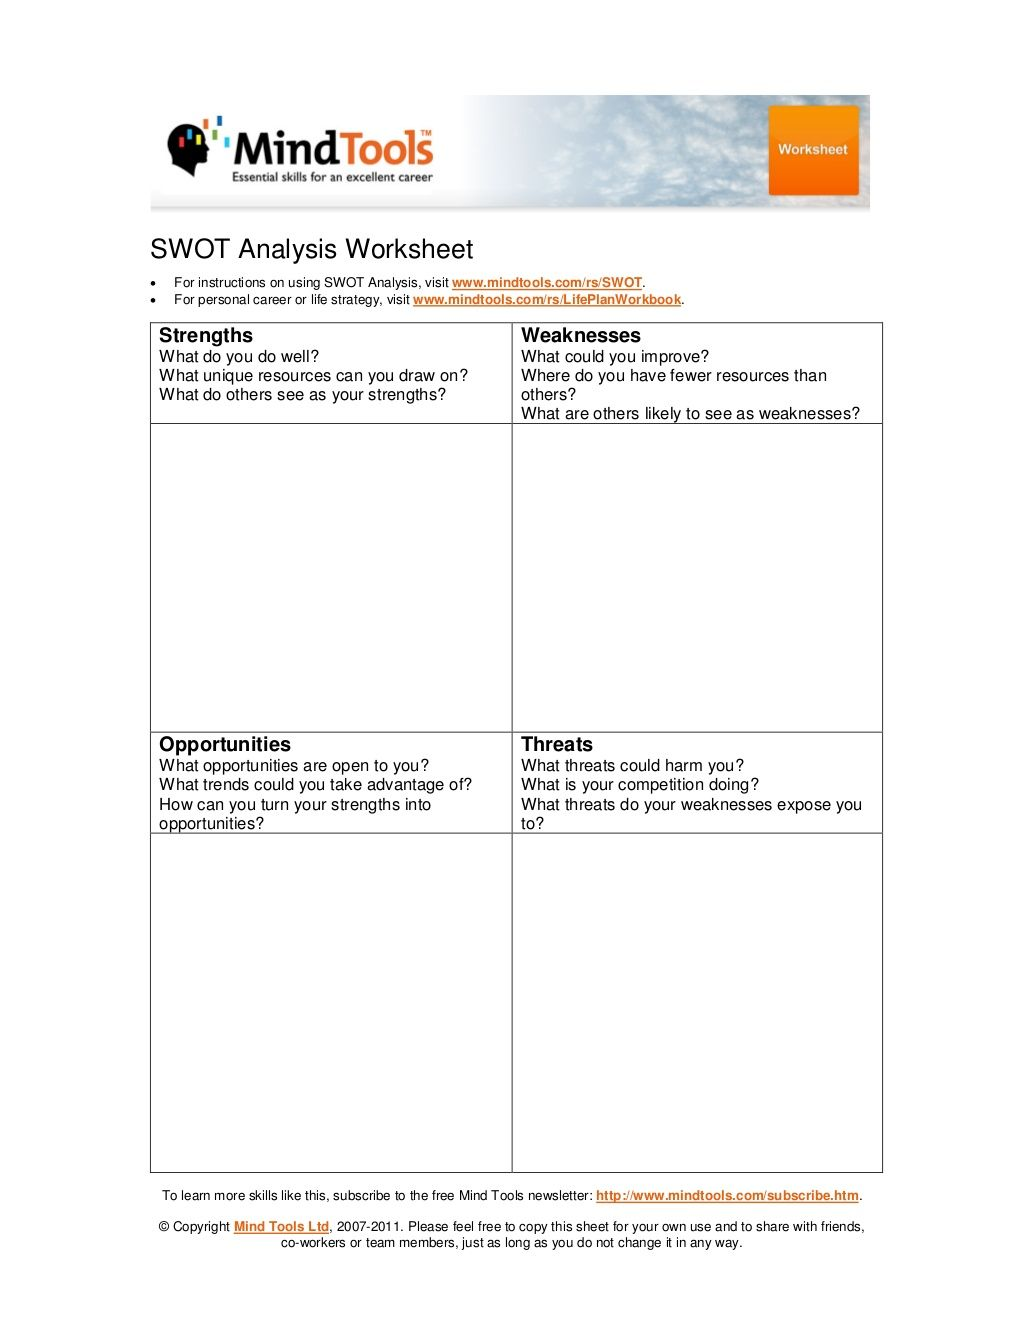 Swotysis Worksheet For Instructions On Using Swot